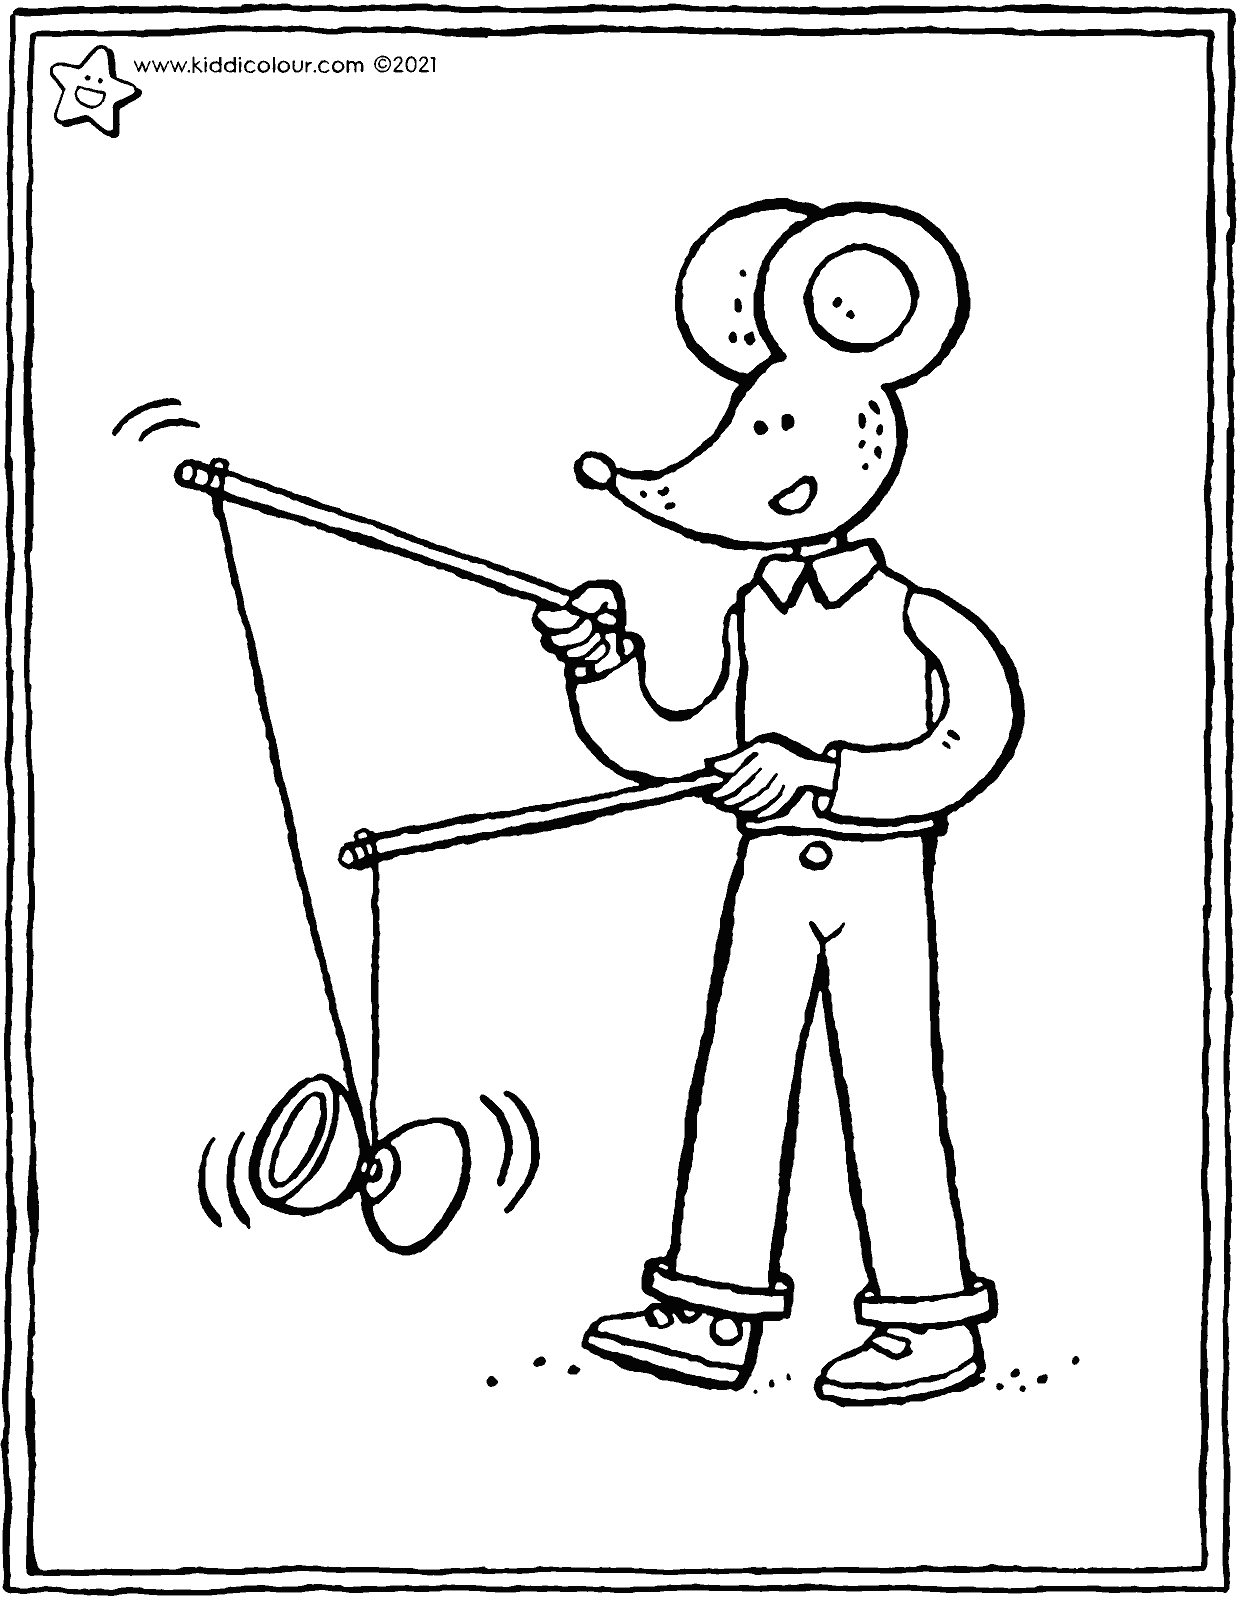 Thomas playing with a diabolo colouring page drawing picture 01V